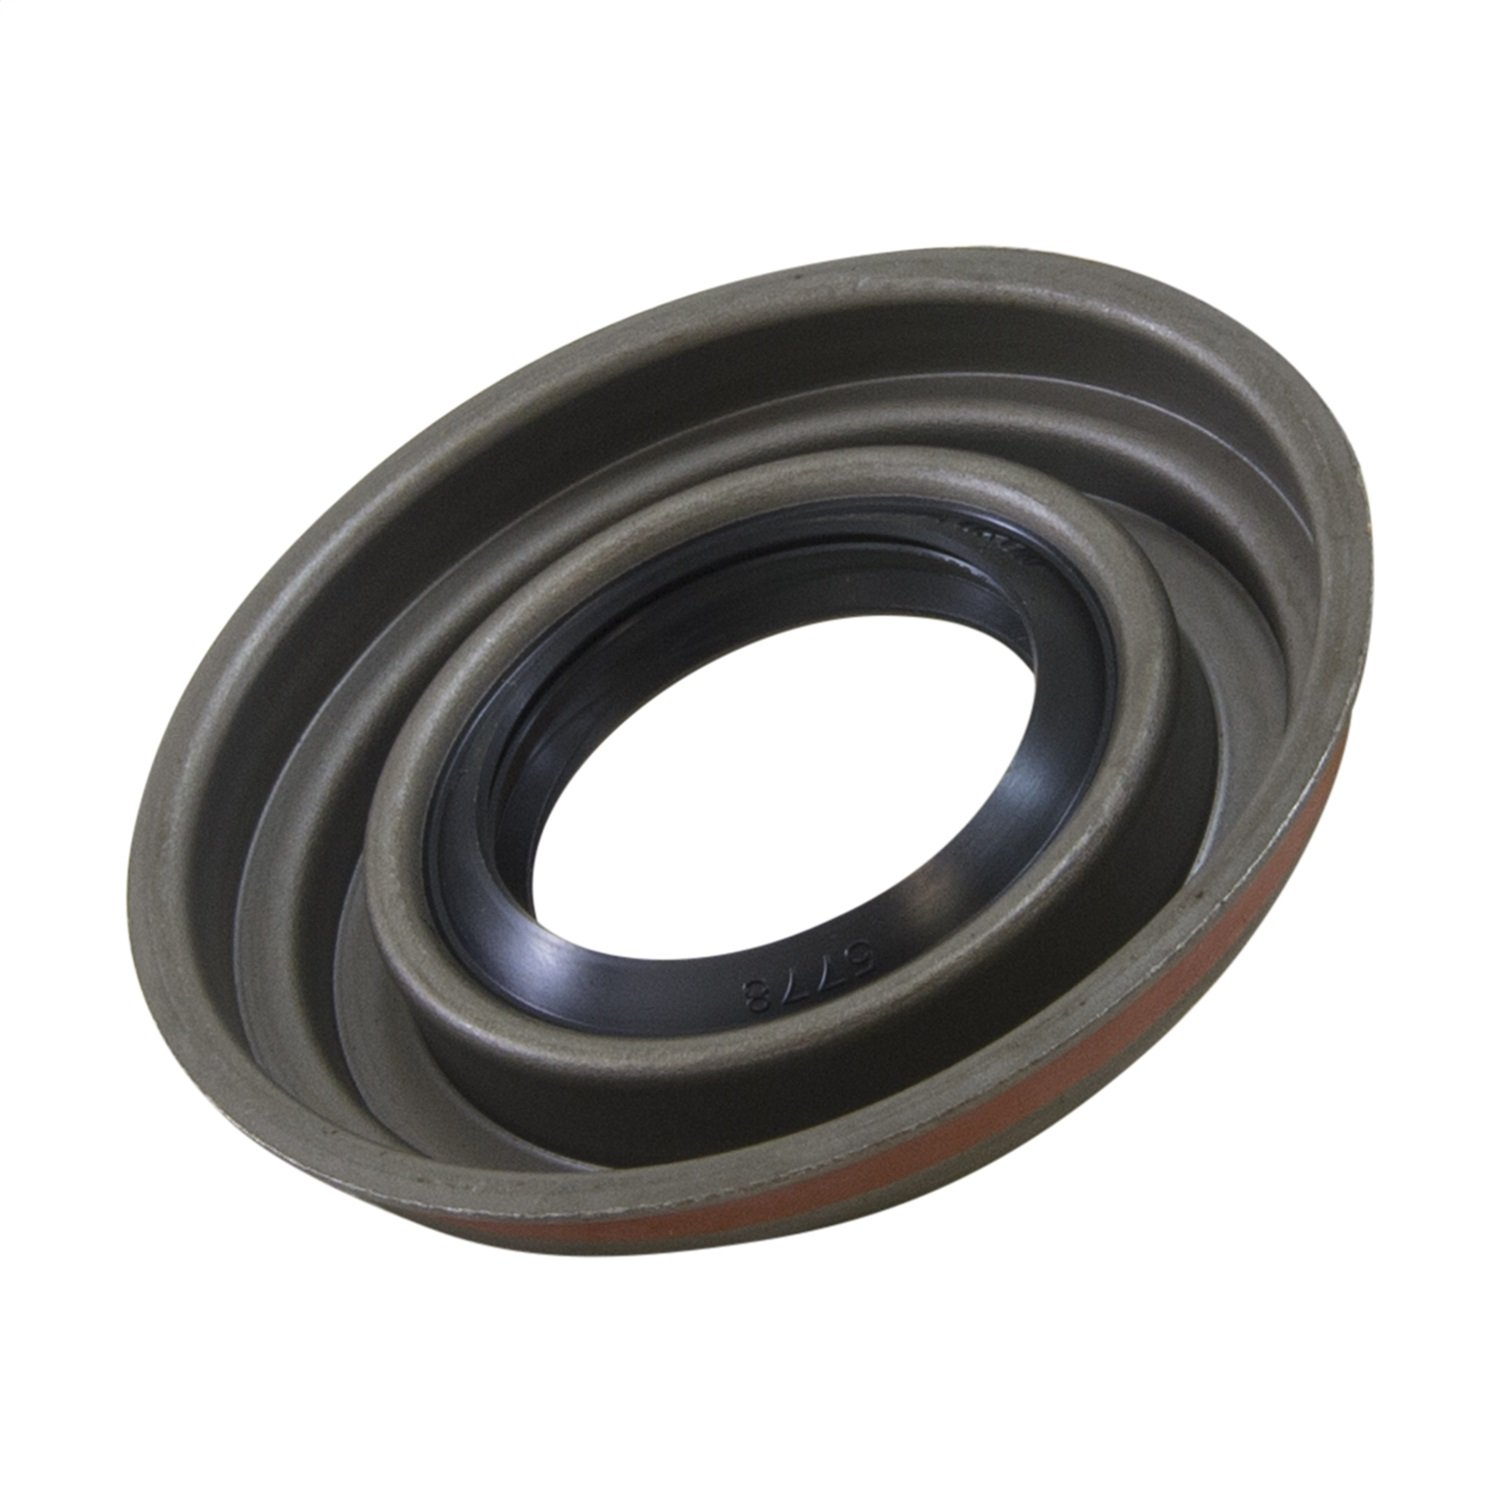 Yukon (YMS4434V) Replacement Pinion Seal for Jeep TJ Dana 30/44 Differential